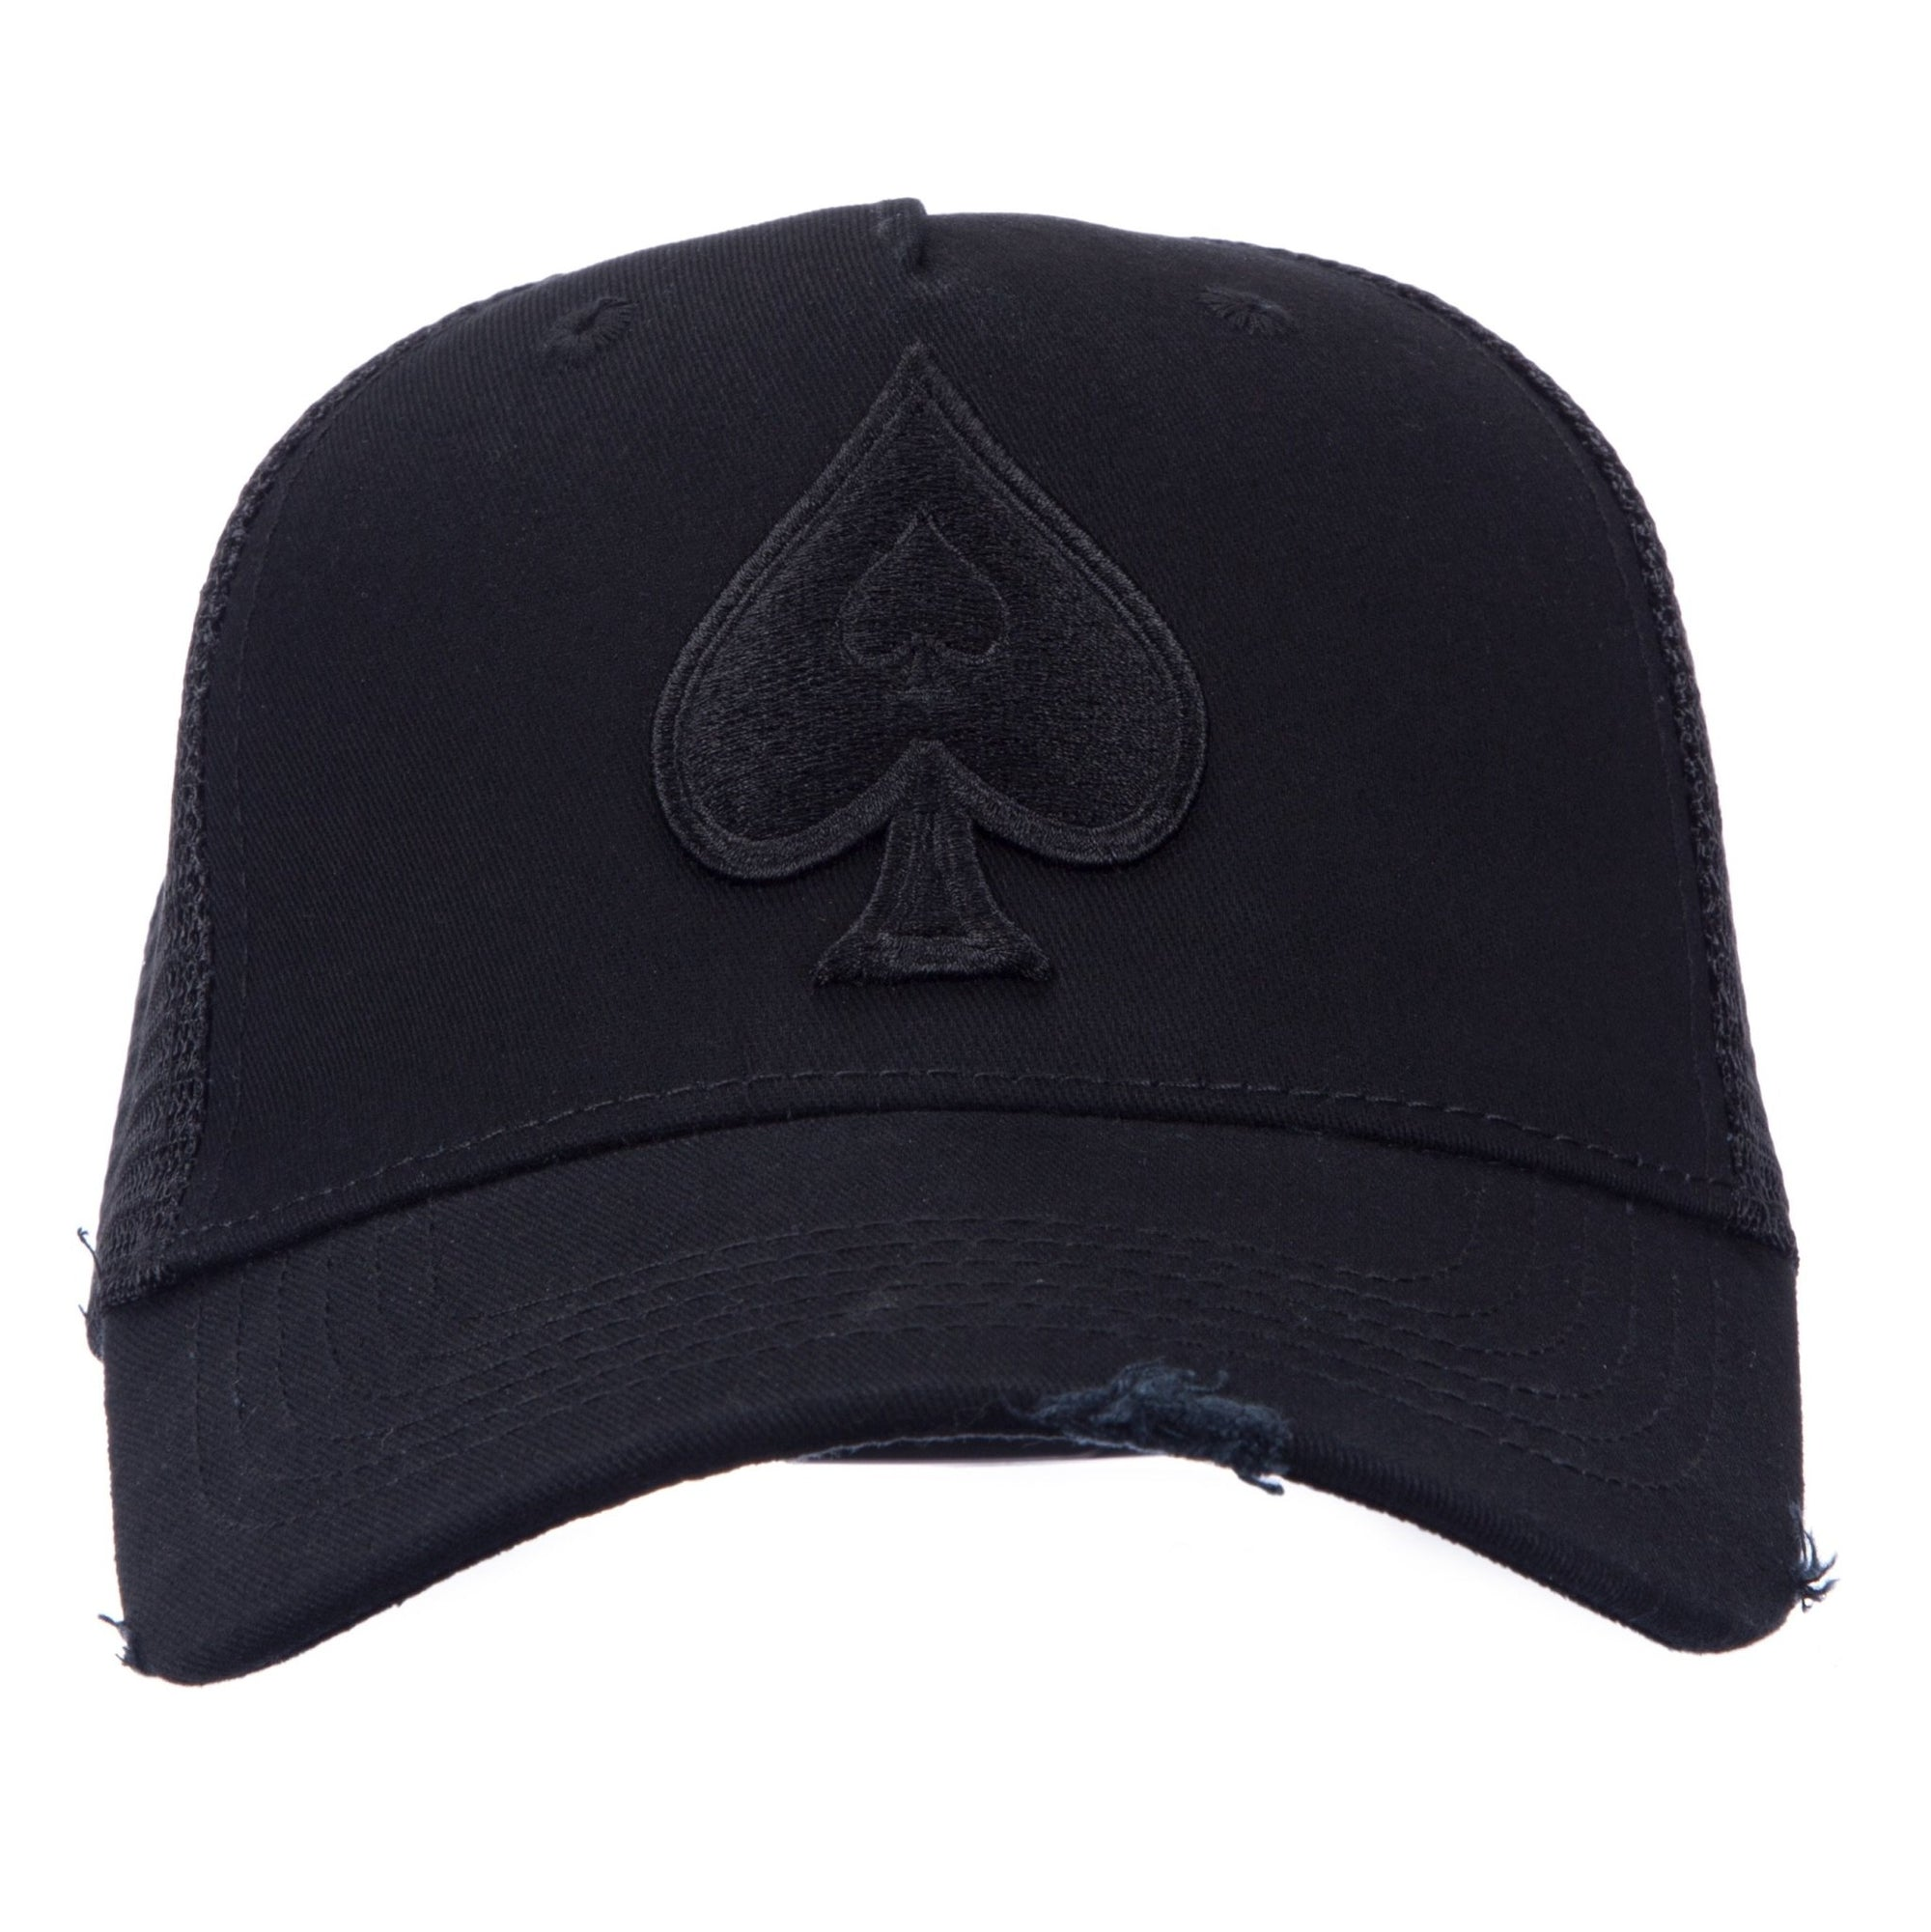 Distressed Black Trucker with Black Spades - ACE VESTITI